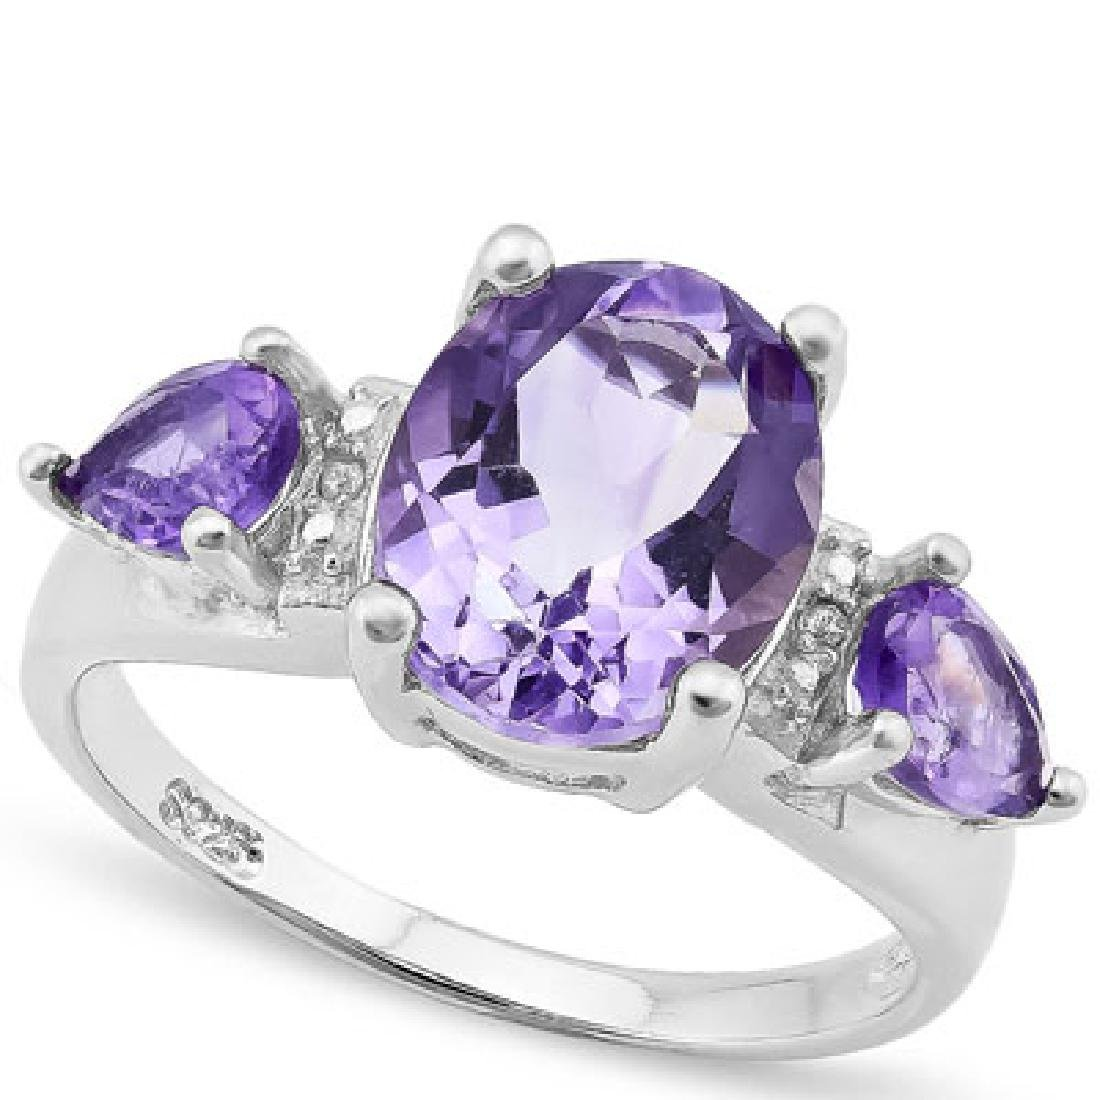 925 STERLING SILVER RING WITH AMETHYST & AMETHYST